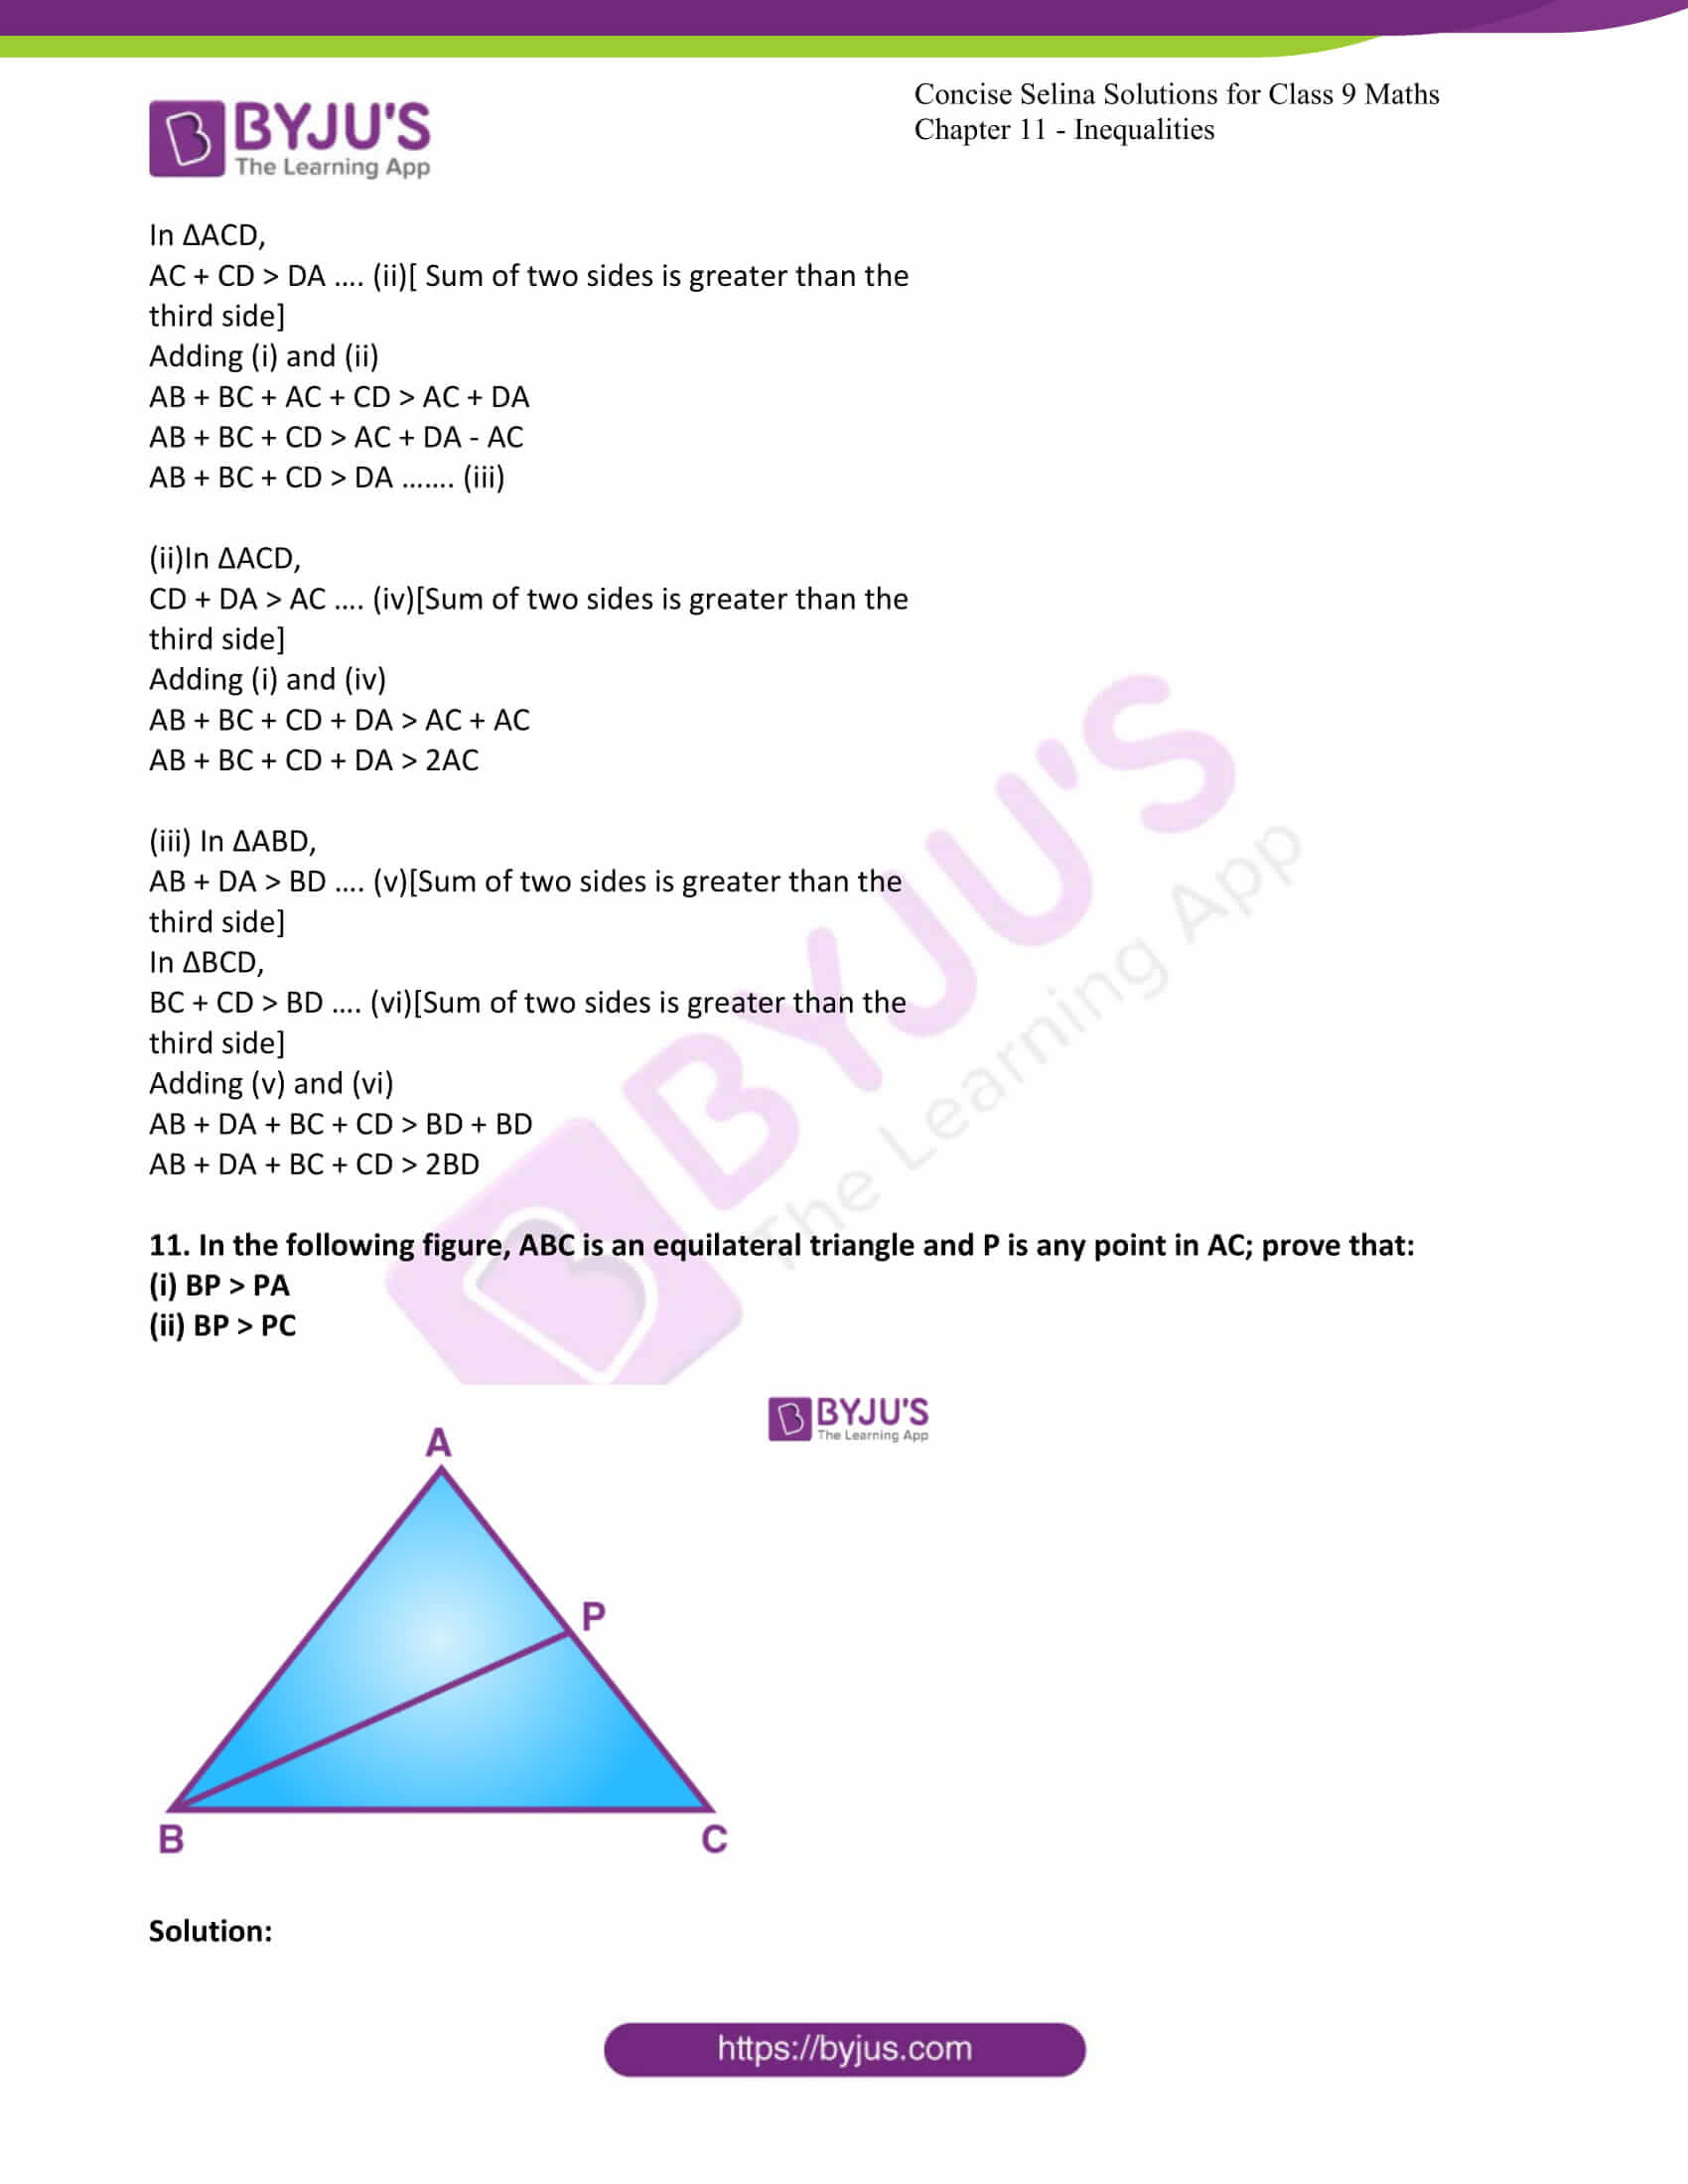 icse class 9 maths may10 selina solutions chapter 11 inequalities 10